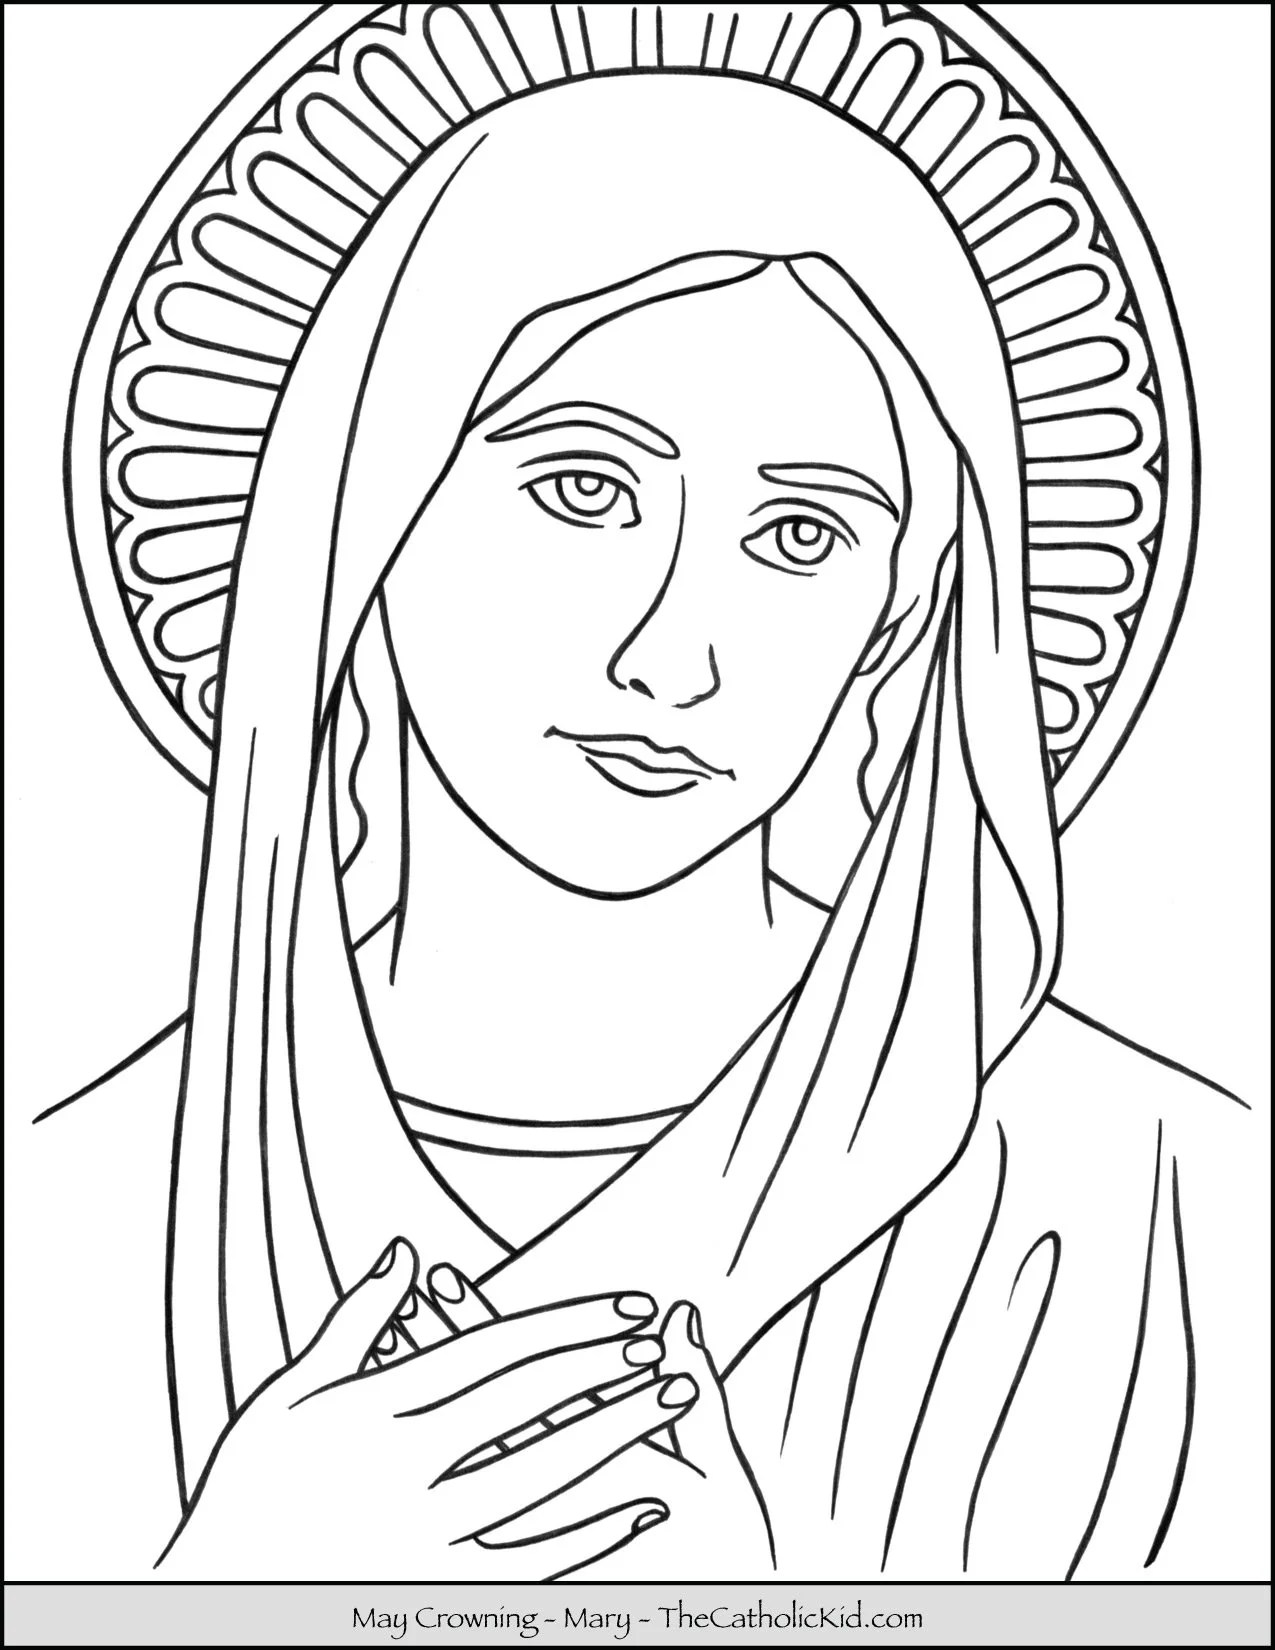 May Crowning Coloring Page Mary